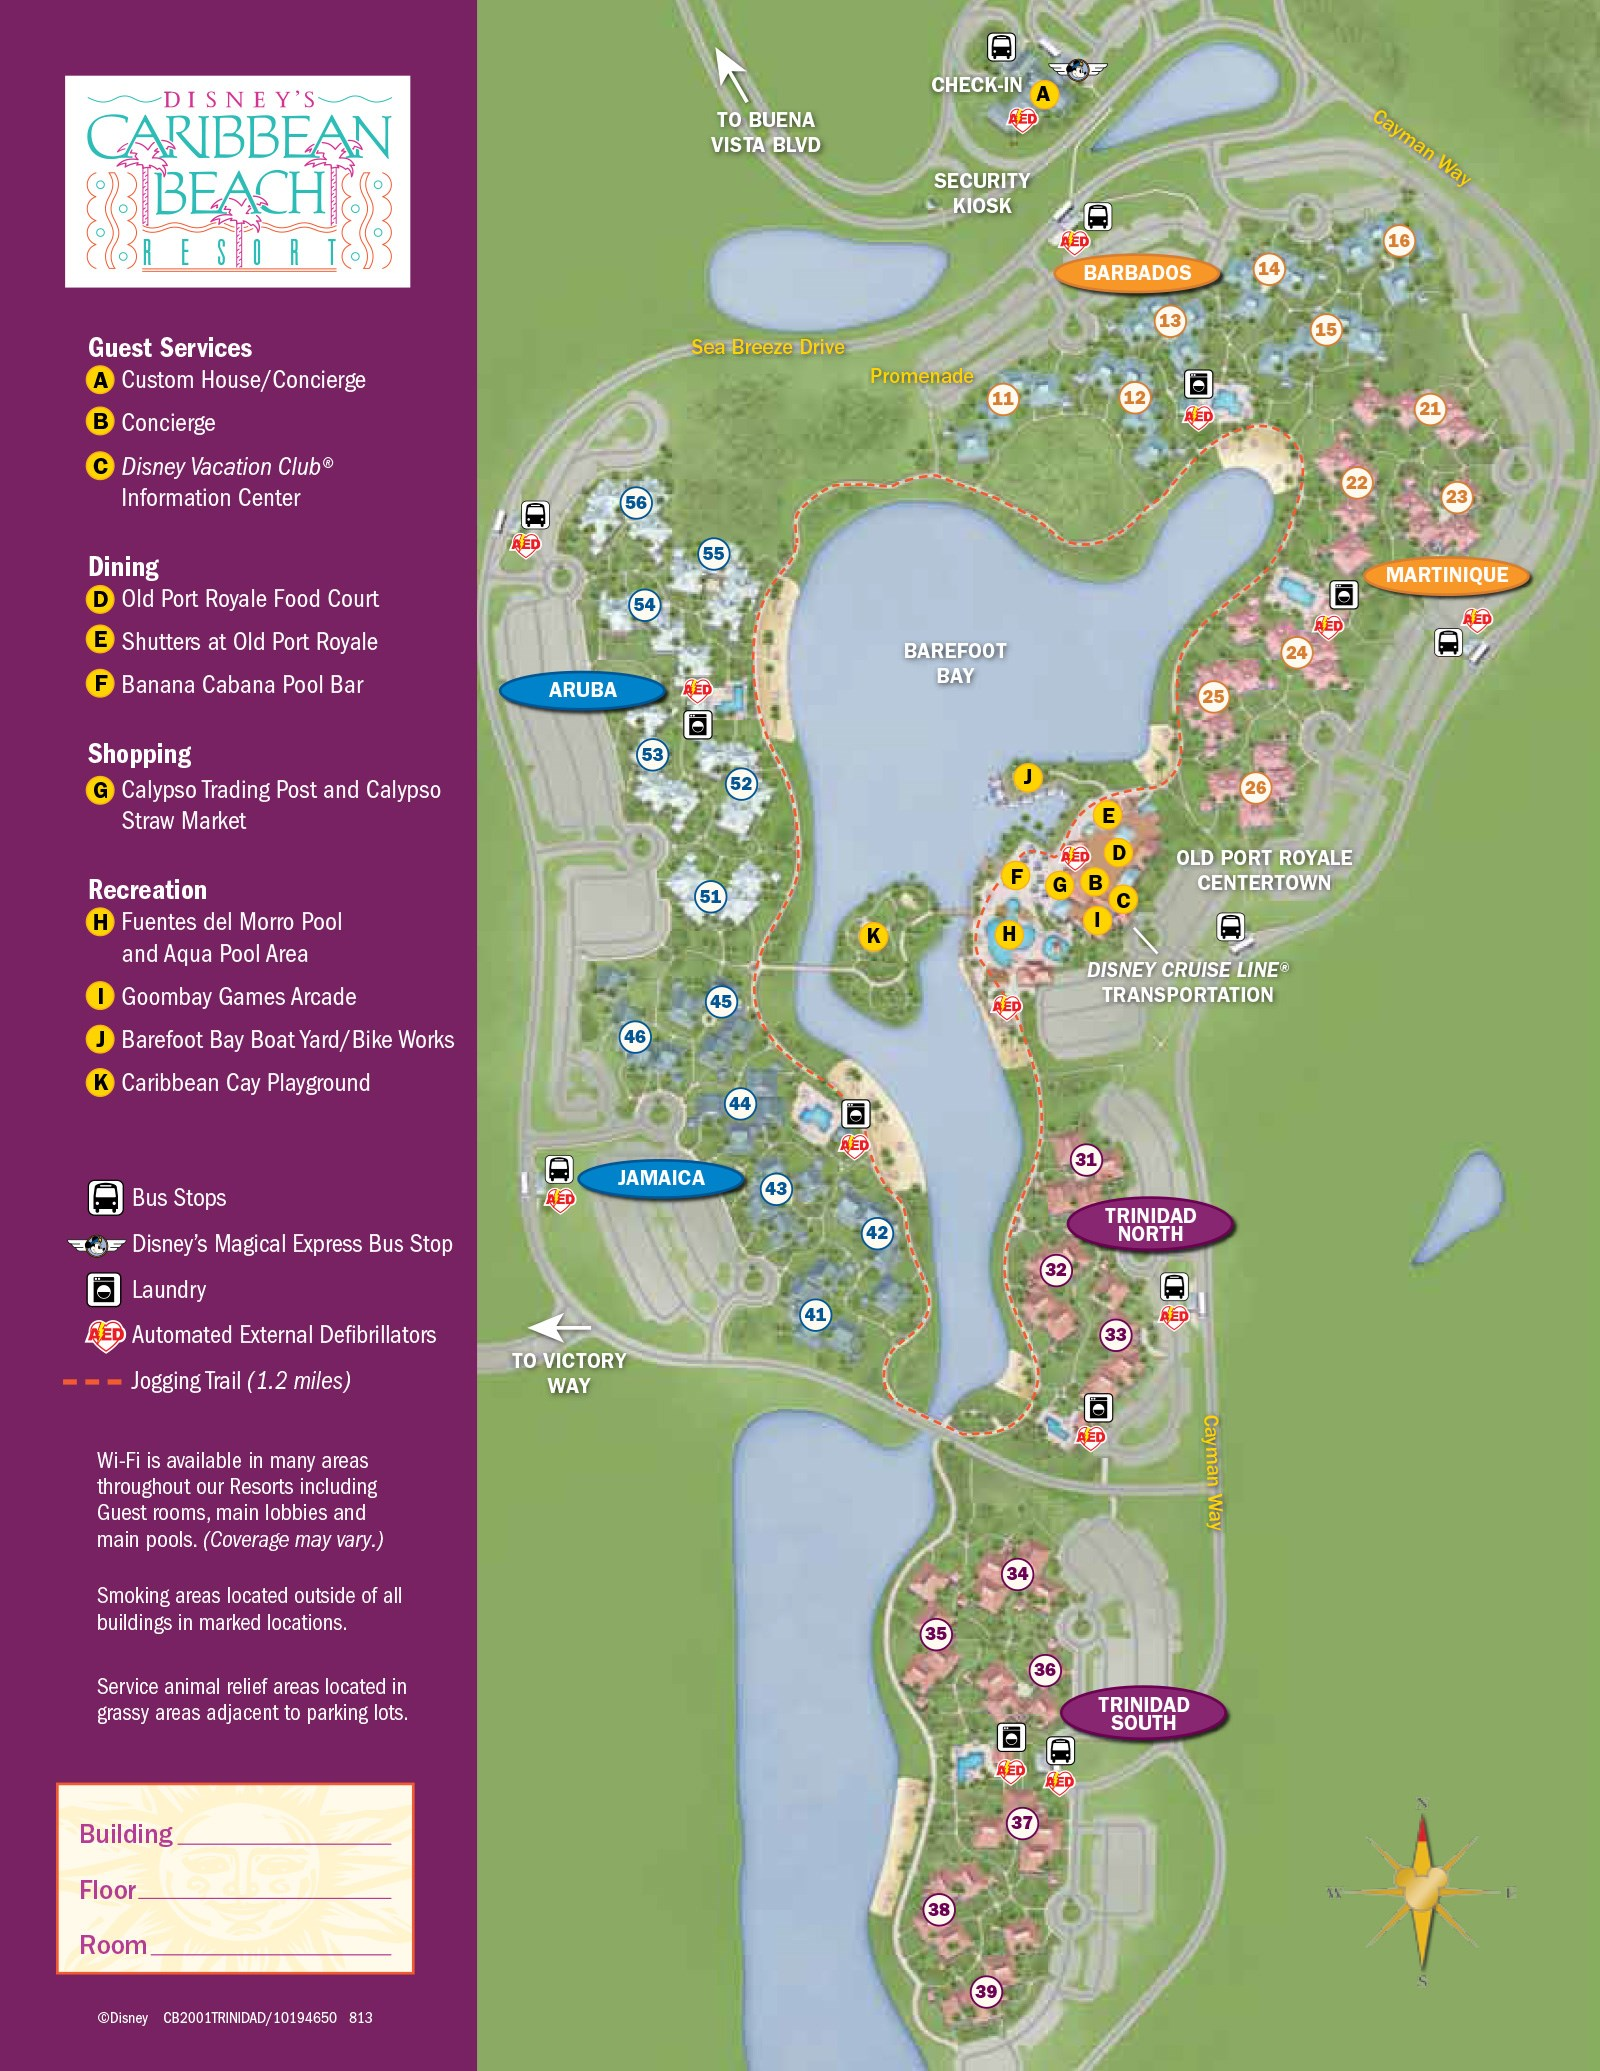 2013 Caribbean Beach Resort guide map